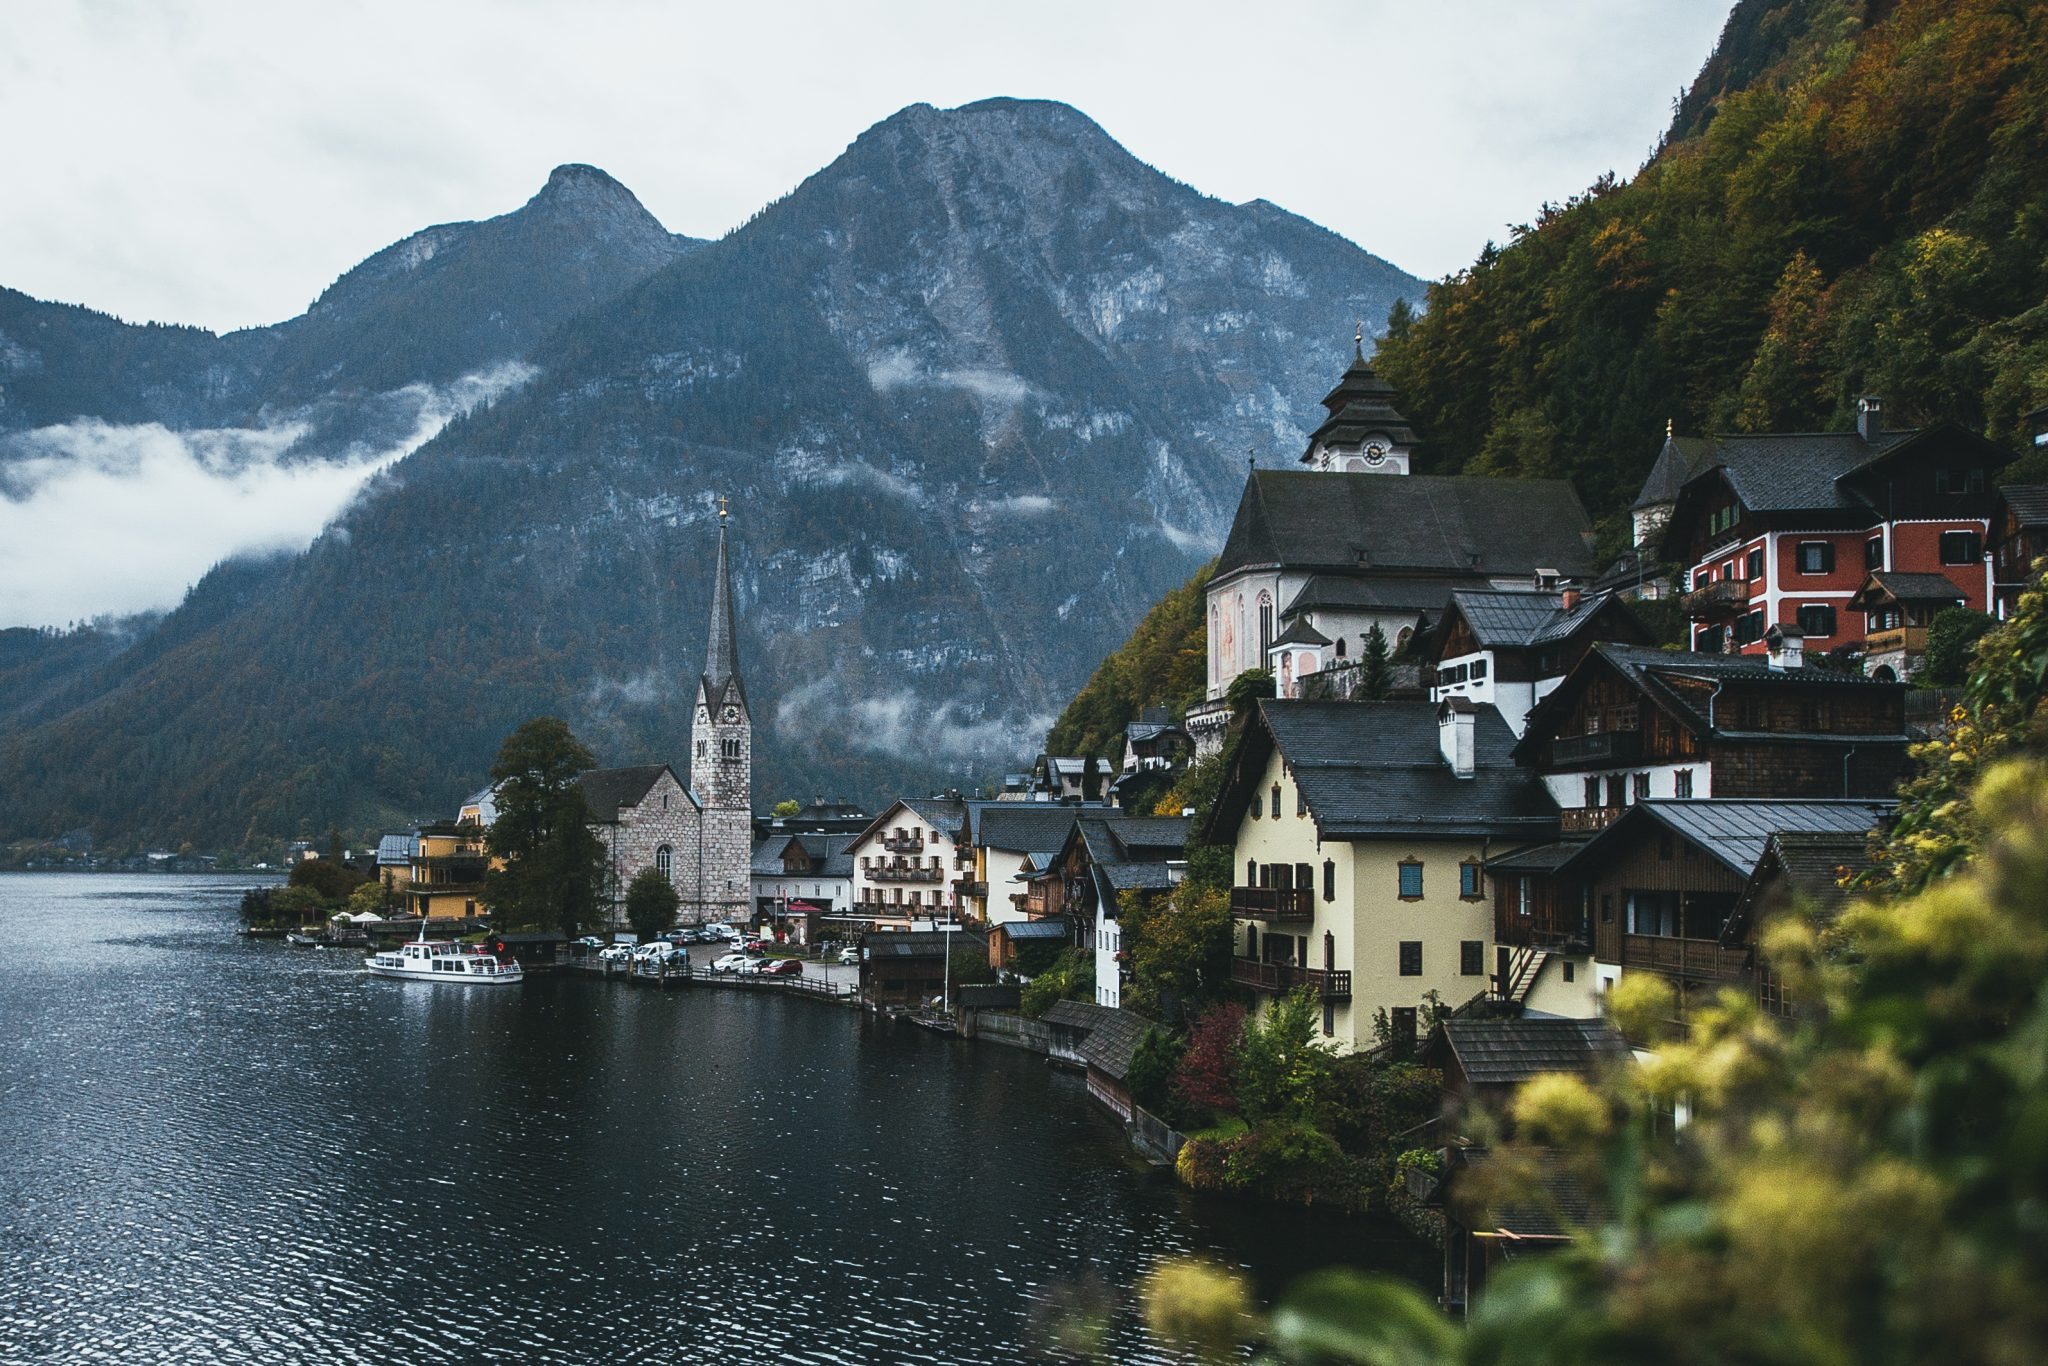 THE BEST SPOTS TO VISIT IN THE ALPS